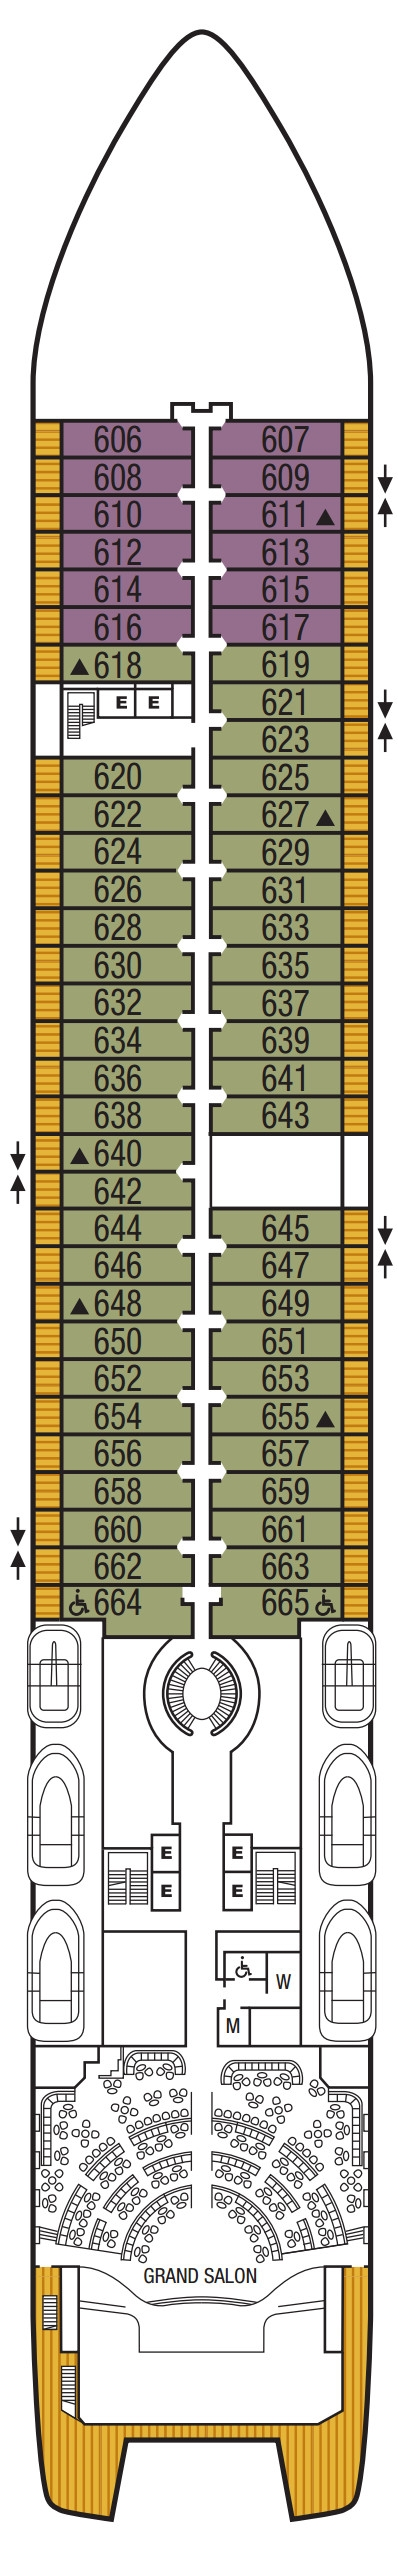 Seabourn Ovation Deck 6 layout